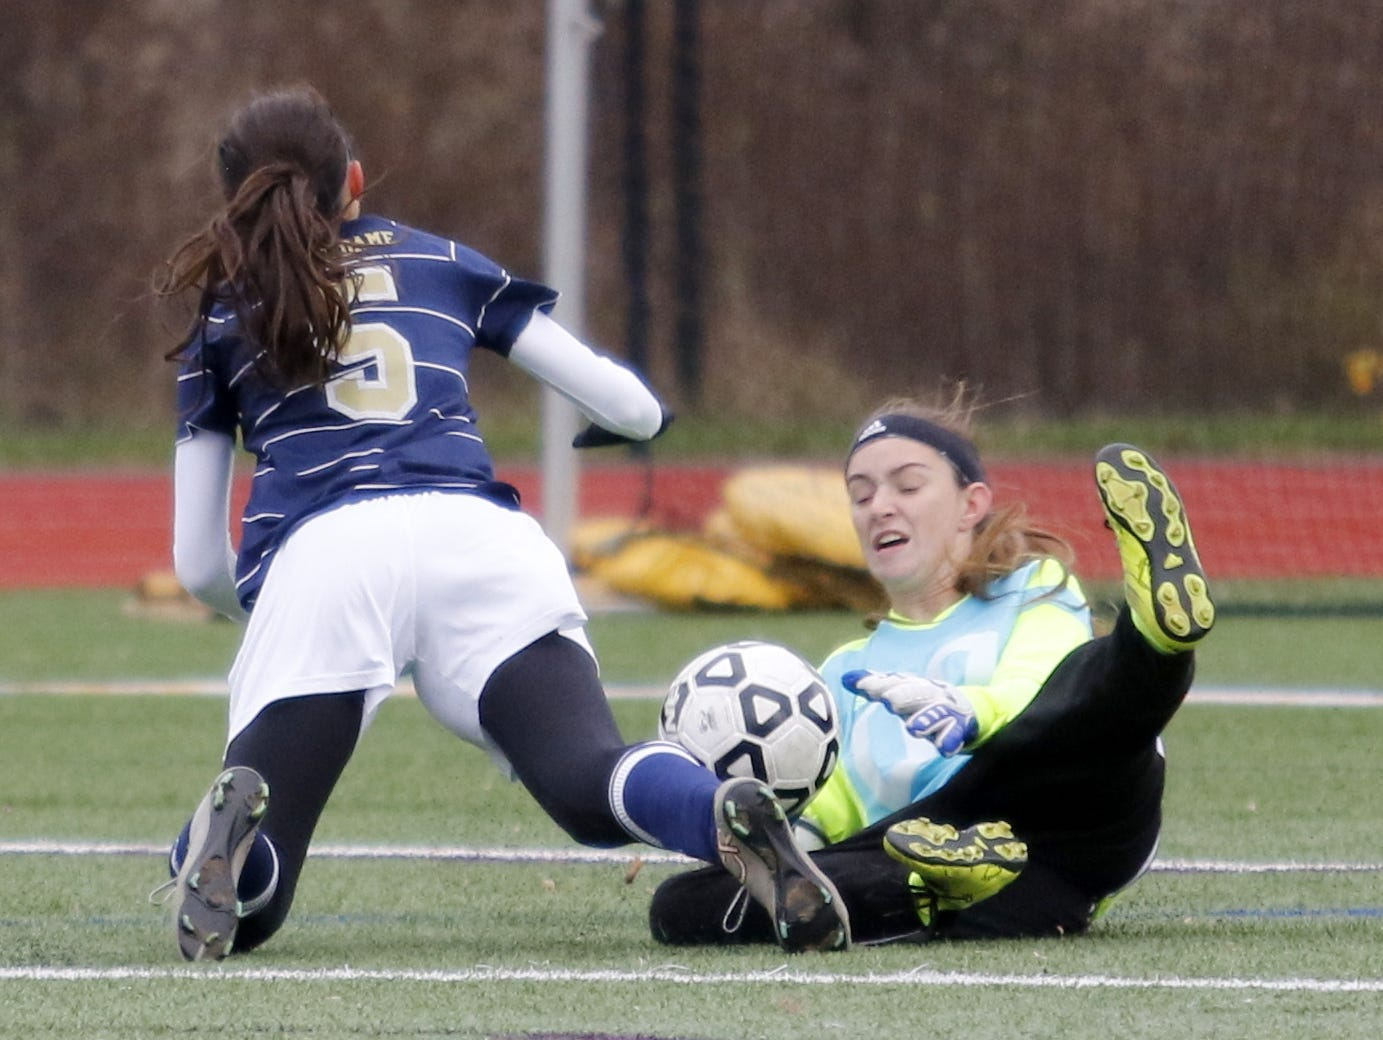 Schohaire goalie Desiree Palmatier makes a sliding save on a shot by Notre Dame's Laurel Vargas in the first half of Saturday's Class C state semifinal at Cortland High School.